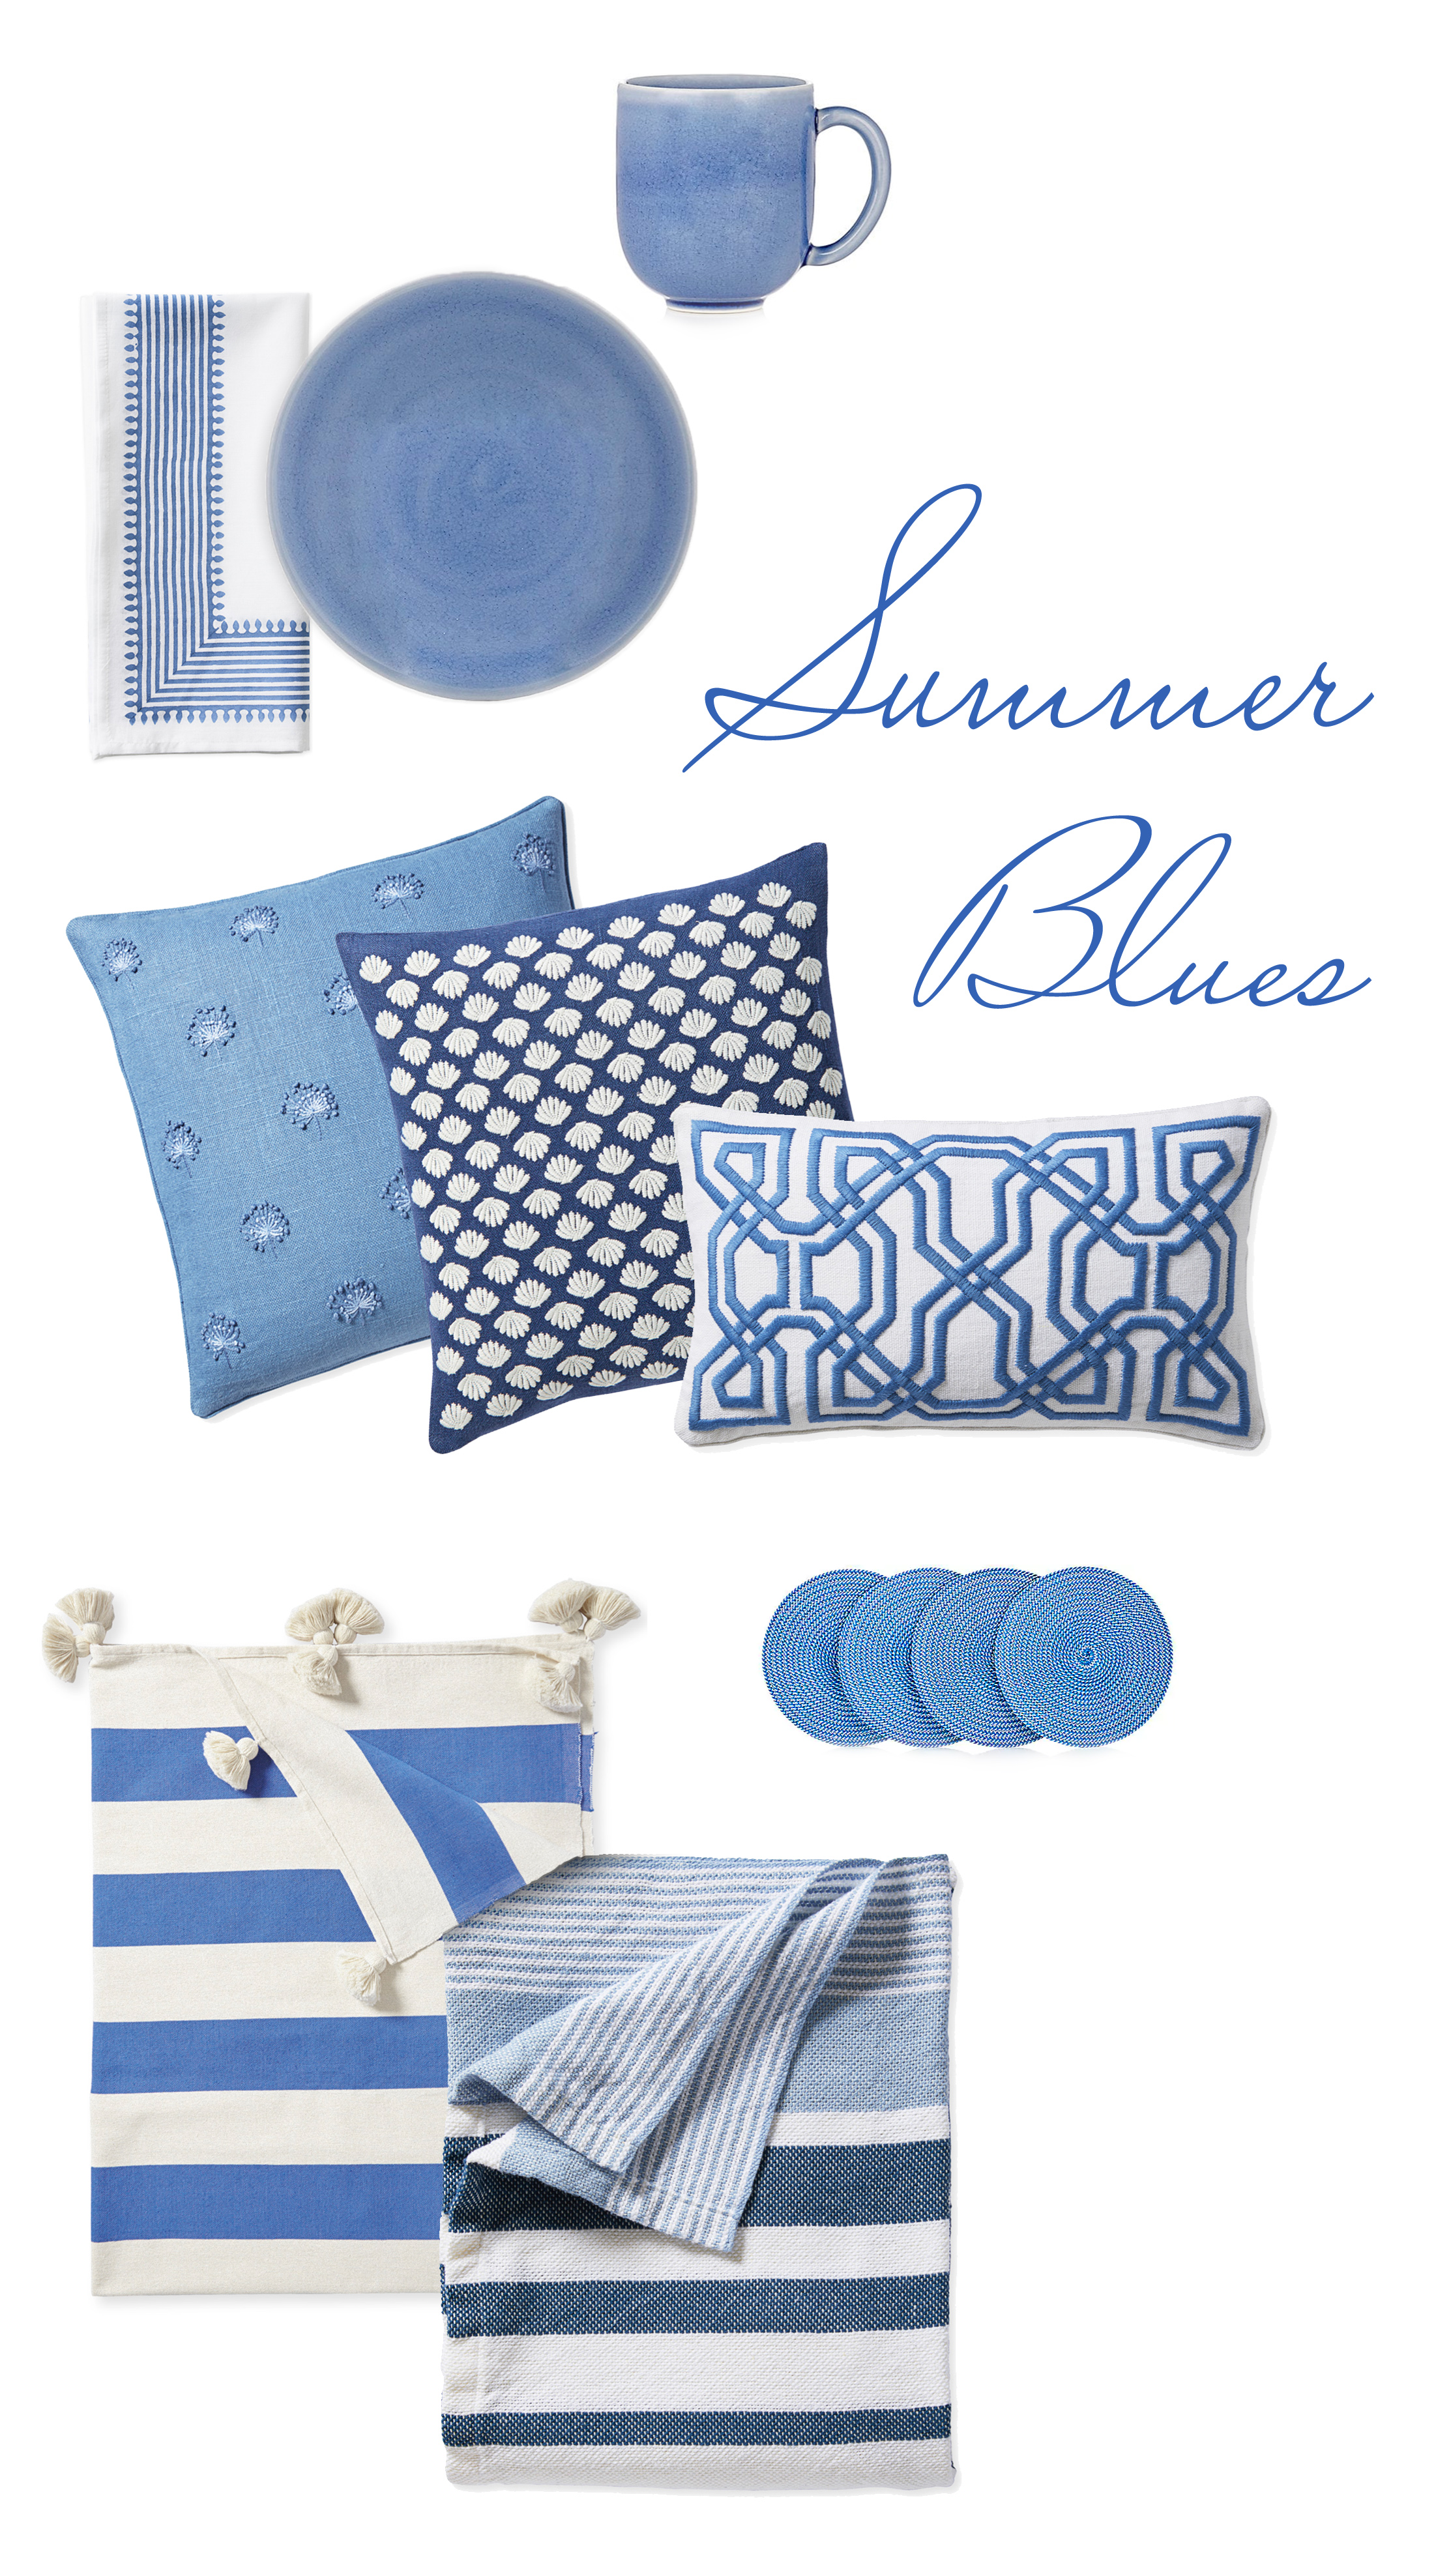 Freshen up for summer by adding blue. Dinnerware, linens, pillows, throws, and more!